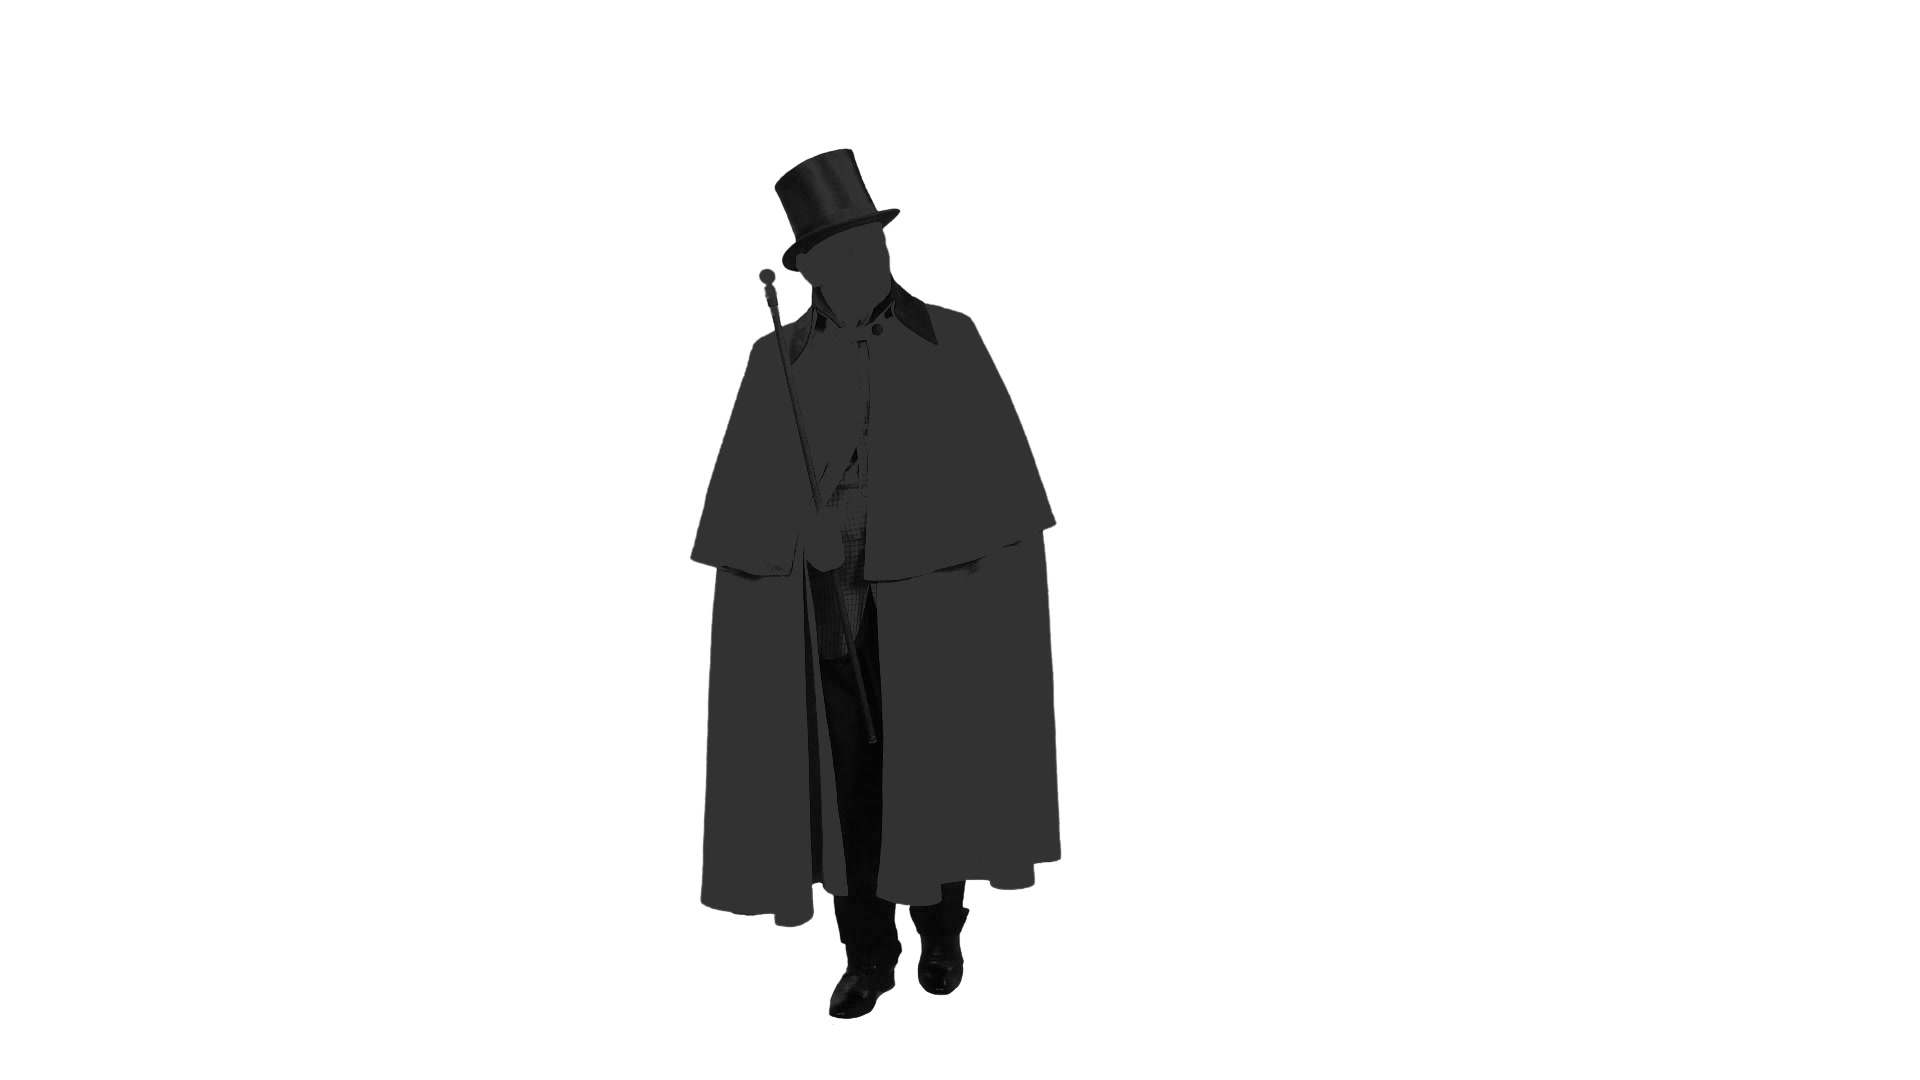 1920x1080 Silhouette Of A Man In A Cylinder Hat Walks With A Cane, Alpha